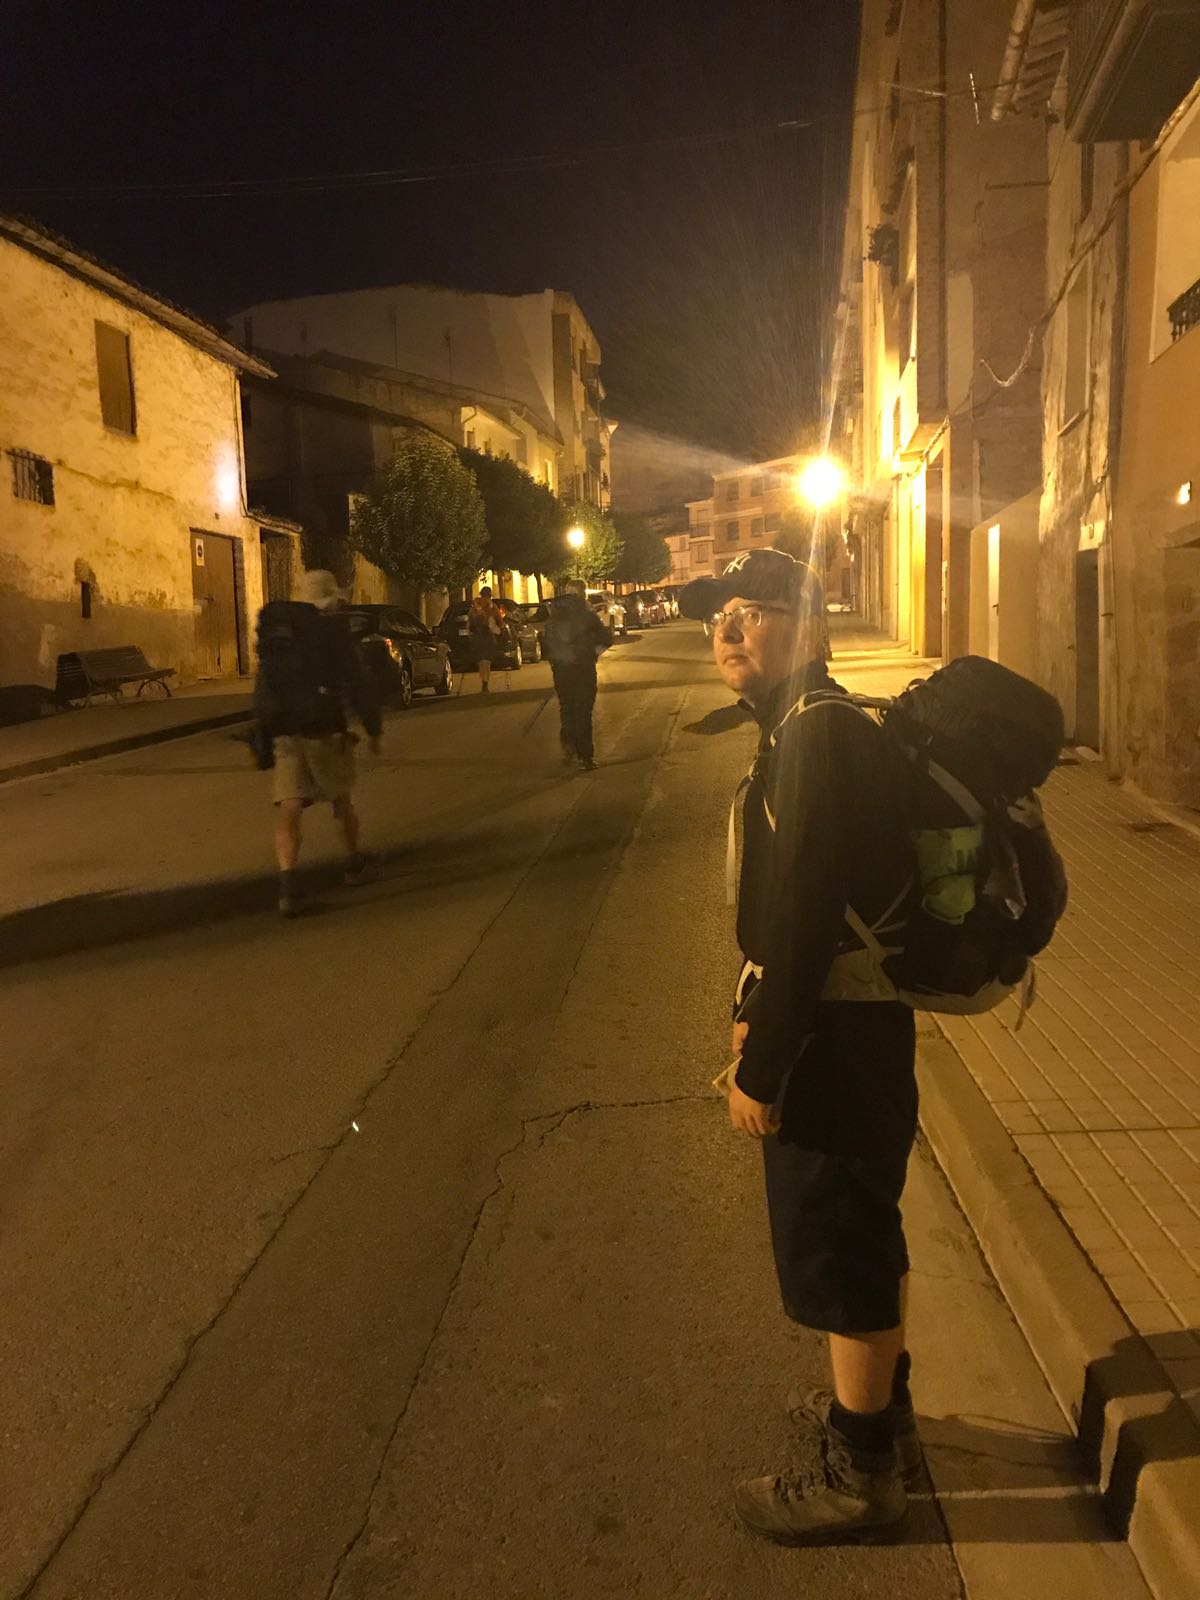 Leaving Najera early in the morning before sunrise